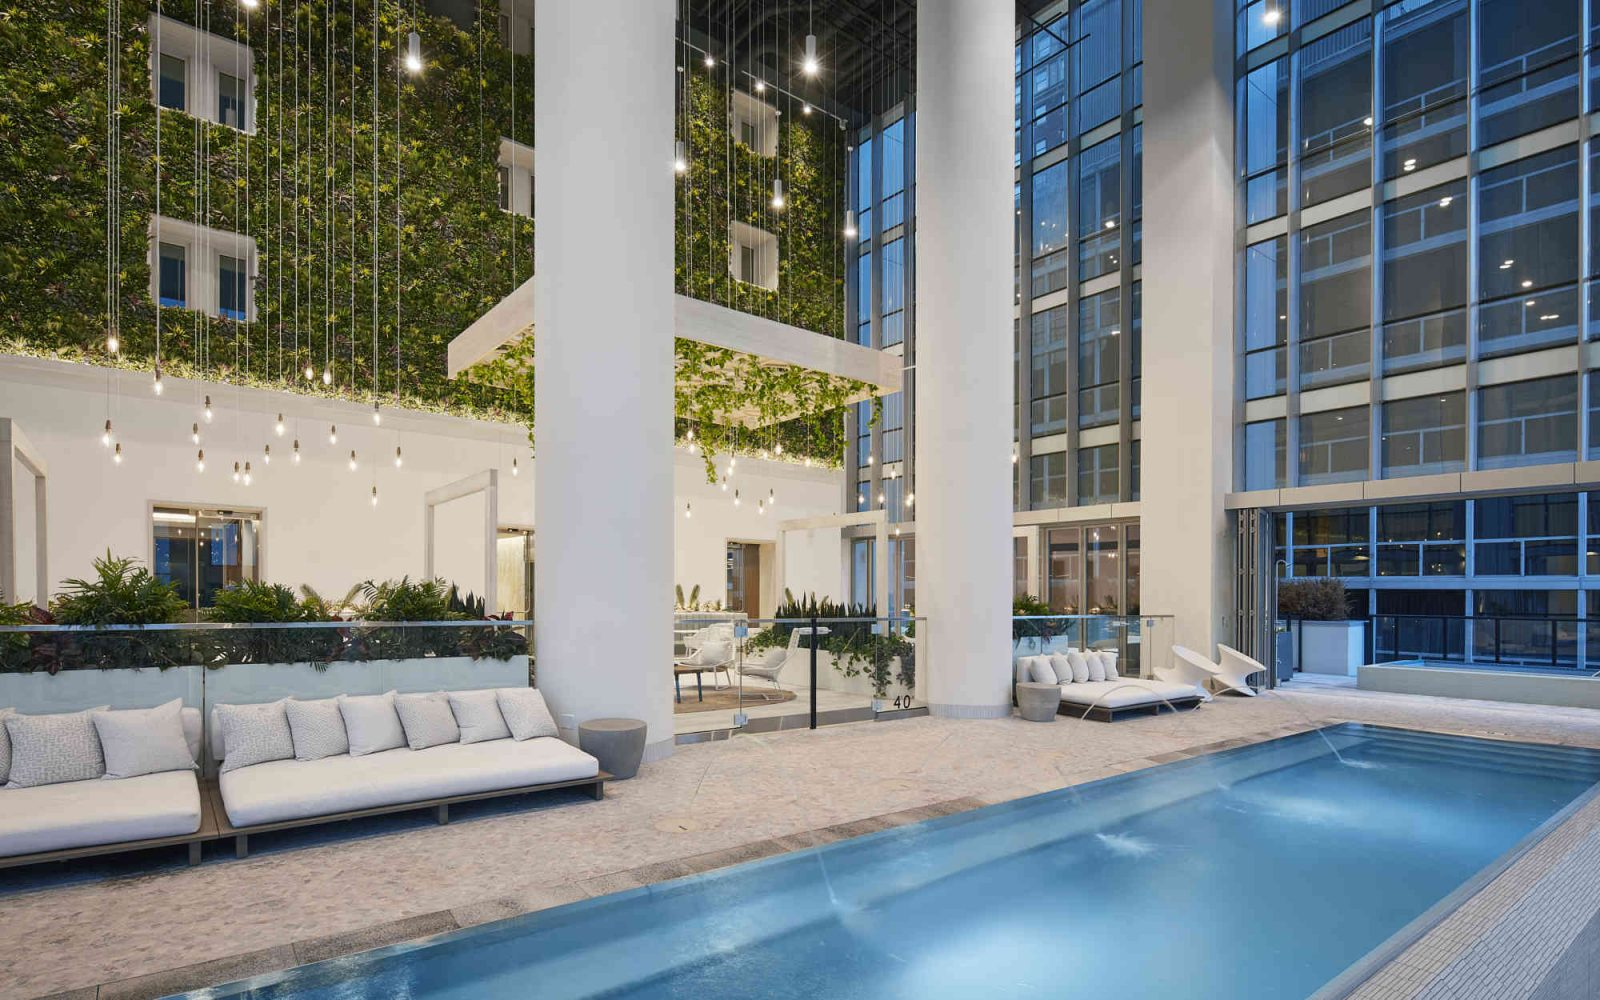 Essex interior pool with couches